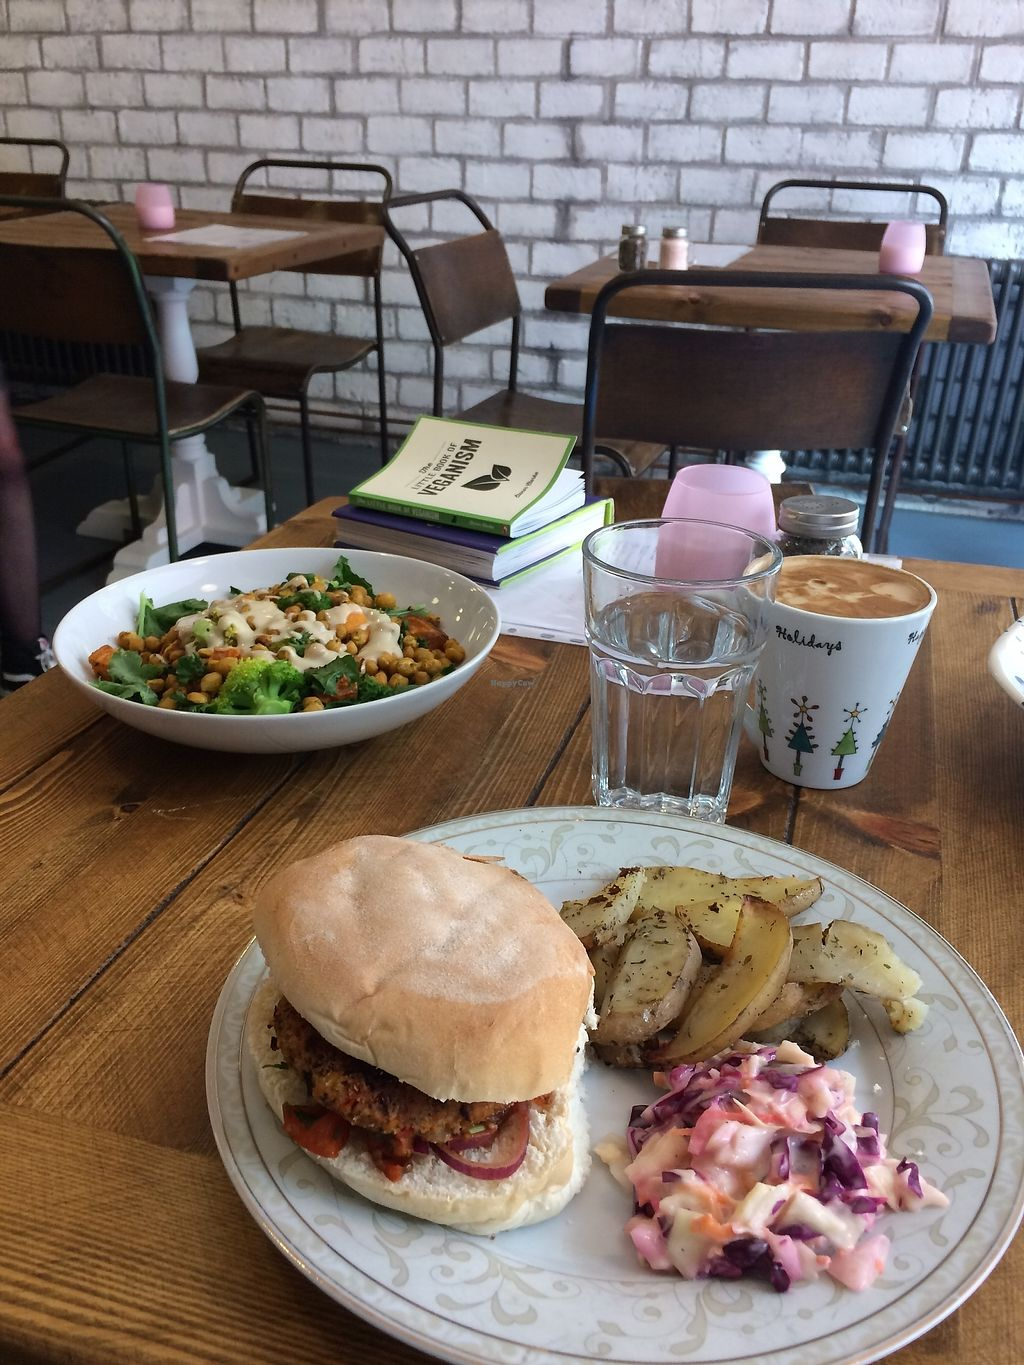 """Photo of Humblest of Pleasures  by <a href=""""/members/profile/Hoggy"""">Hoggy</a> <br/>Top dish - 'Buddha Bowl' Bottom Dish - 'Spicy Bean Burger'  Featuring soy latte, books available for browsing and glimpse of interior design <br/> July 23, 2017  - <a href='/contact/abuse/image/96089/283949'>Report</a>"""